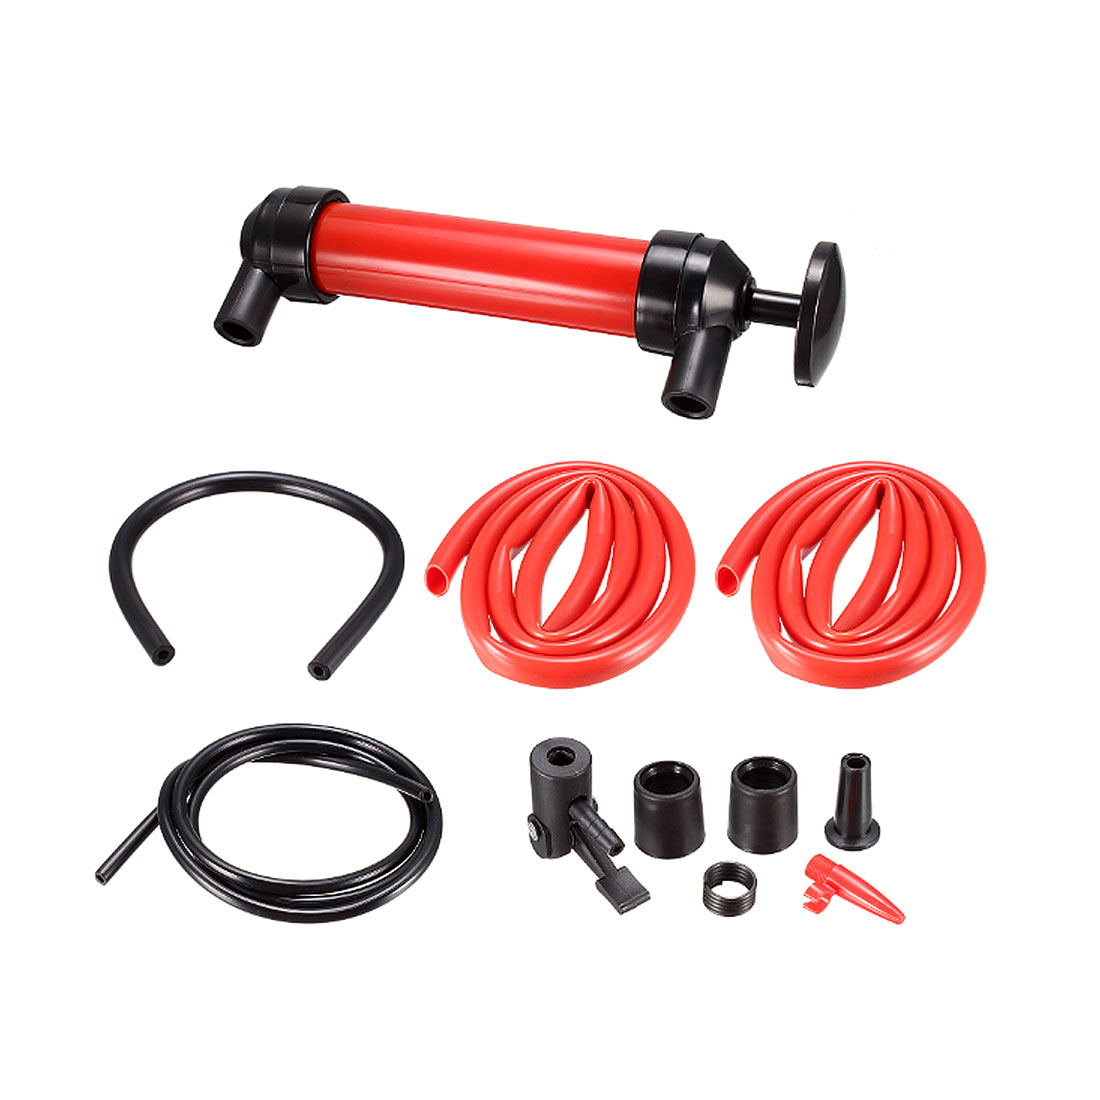 Multi-Use Siphon Fuel Transfer Pump Kit for Gas Oil and Liquids